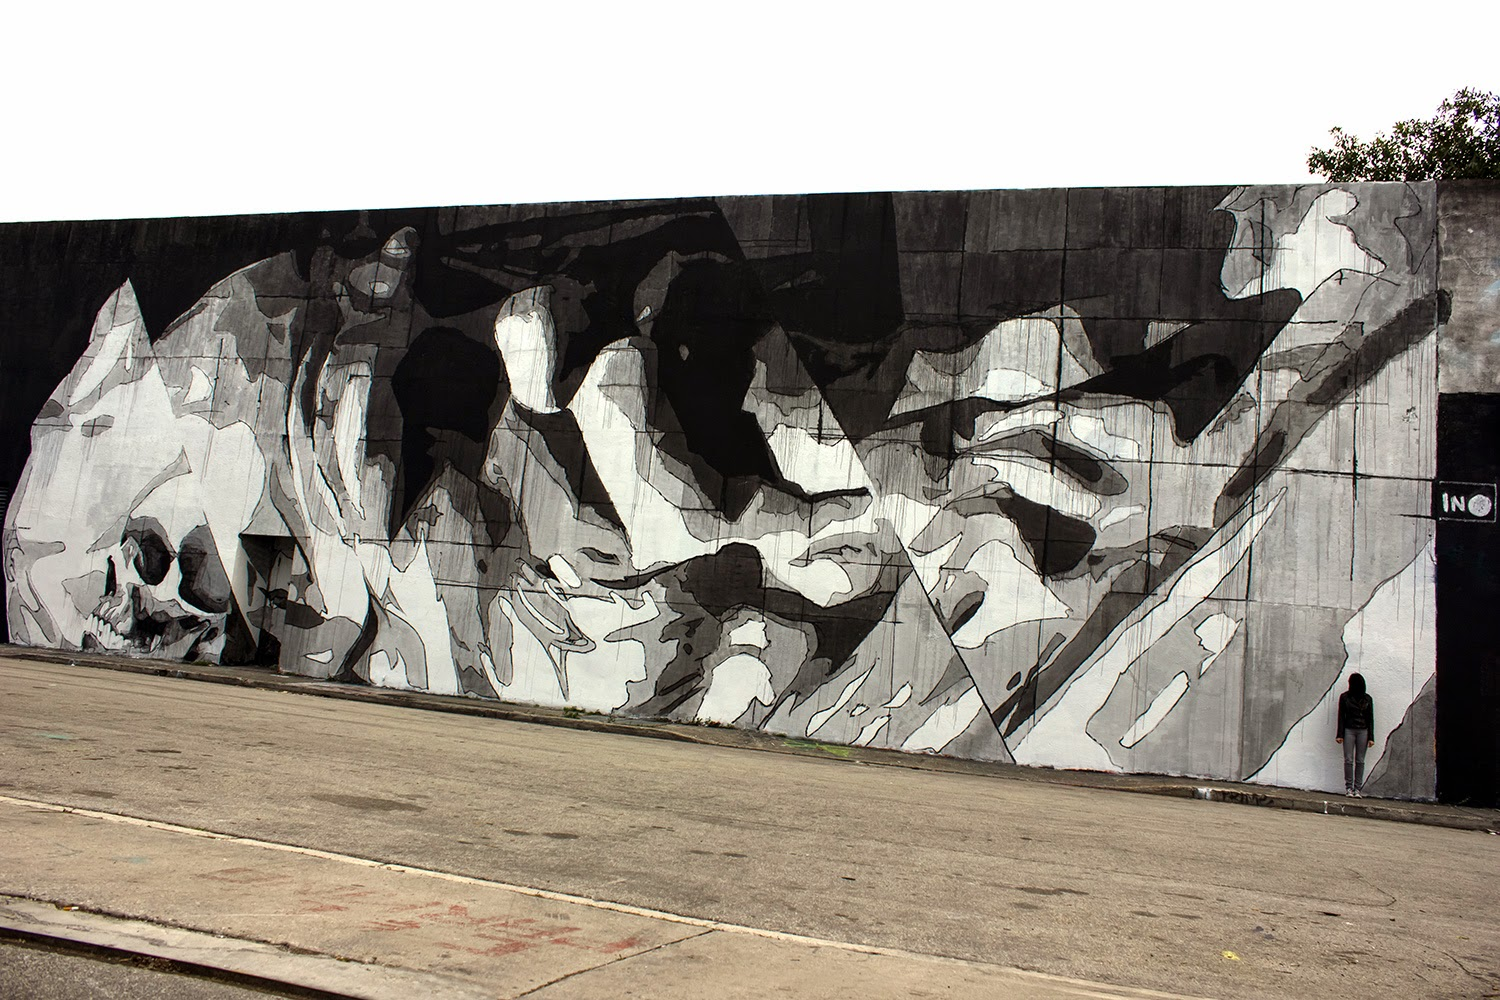 art basel 14 ino paints athens based mural artist ino painted the wall of the known old rc cola plant in